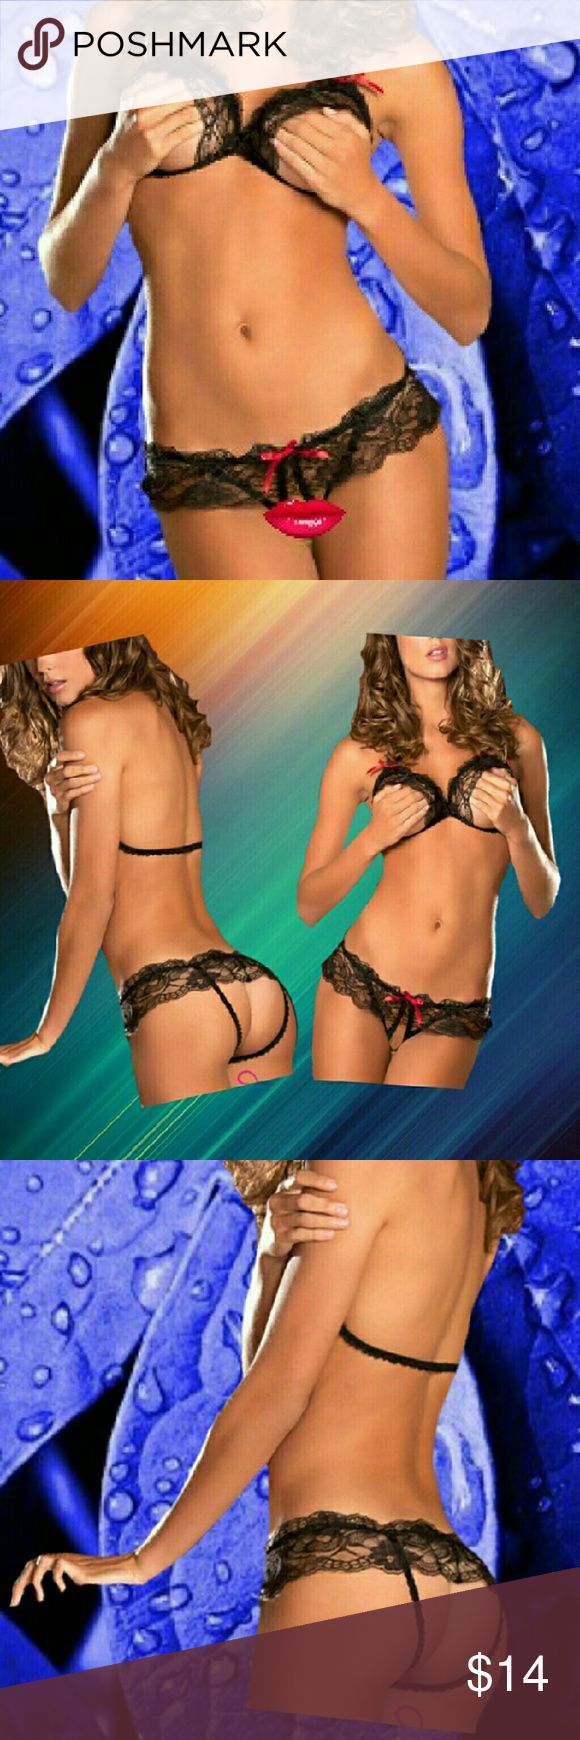 Temptation Erotic Lingerie Black Lace Peek-a-Boo Temptation Erotic Lingerie Black Lace Peek-a-Boo  Temptation Erotic Lingerie Black Lace Peek-a-Boo exposed breast bra with matching crotchless underwear. Black with Red Trim. Feeling Frisky? This set will do the trick. Turn up the fire in your relationship tonight! Guaranteed to bring a big smile and other things....  One size fits small to medium, however, this set is a big larger than the others so if you are leaning toward a large you might…